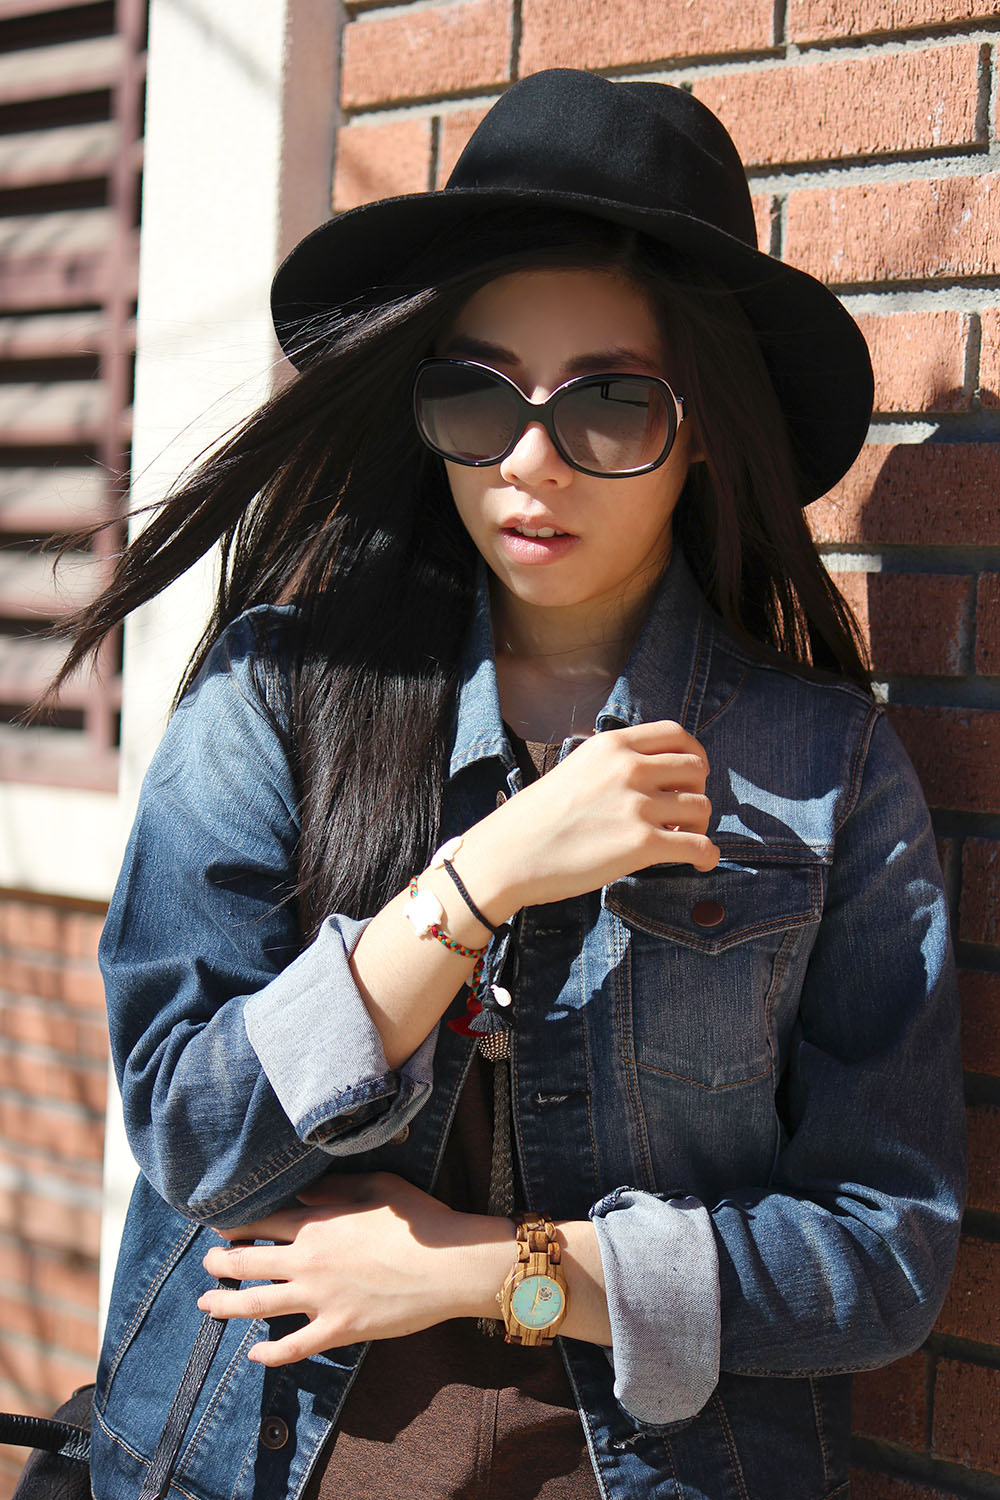 Adrienne Nguyen - Student Pharmacist Casual School Style - Maxi dress with booties and a fedora